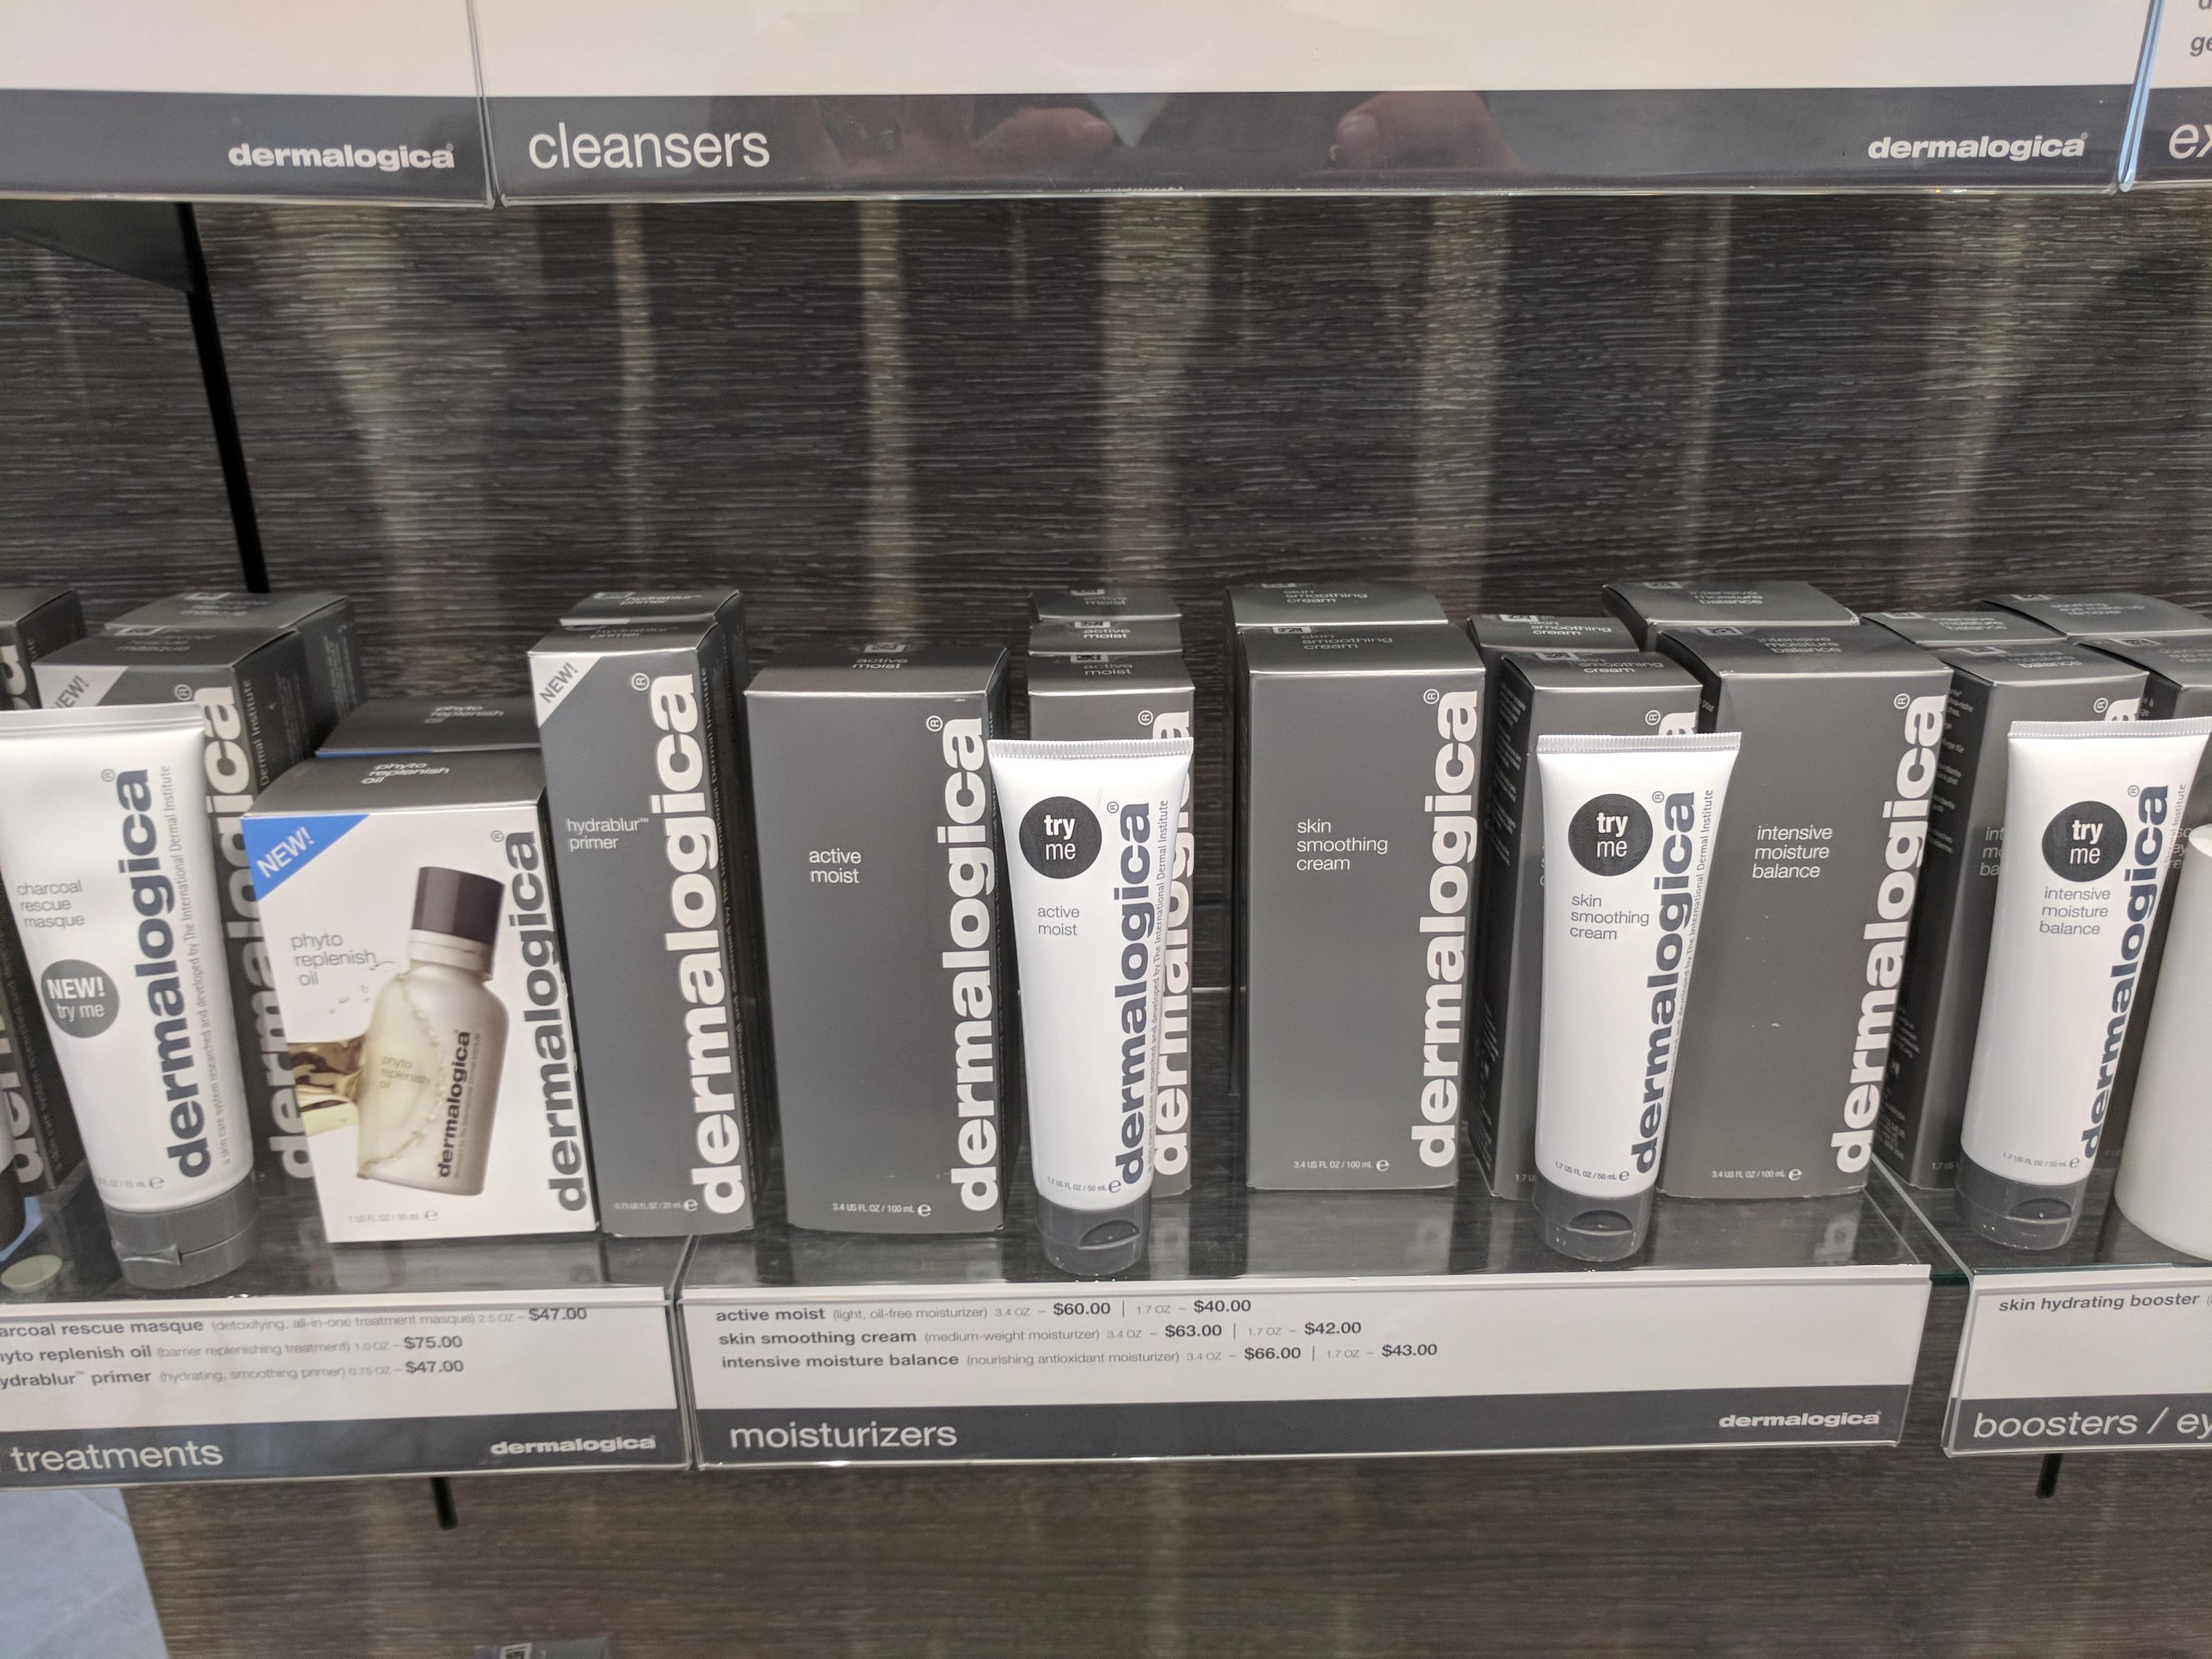 We Offer A Full Line Of Dermalogica Products